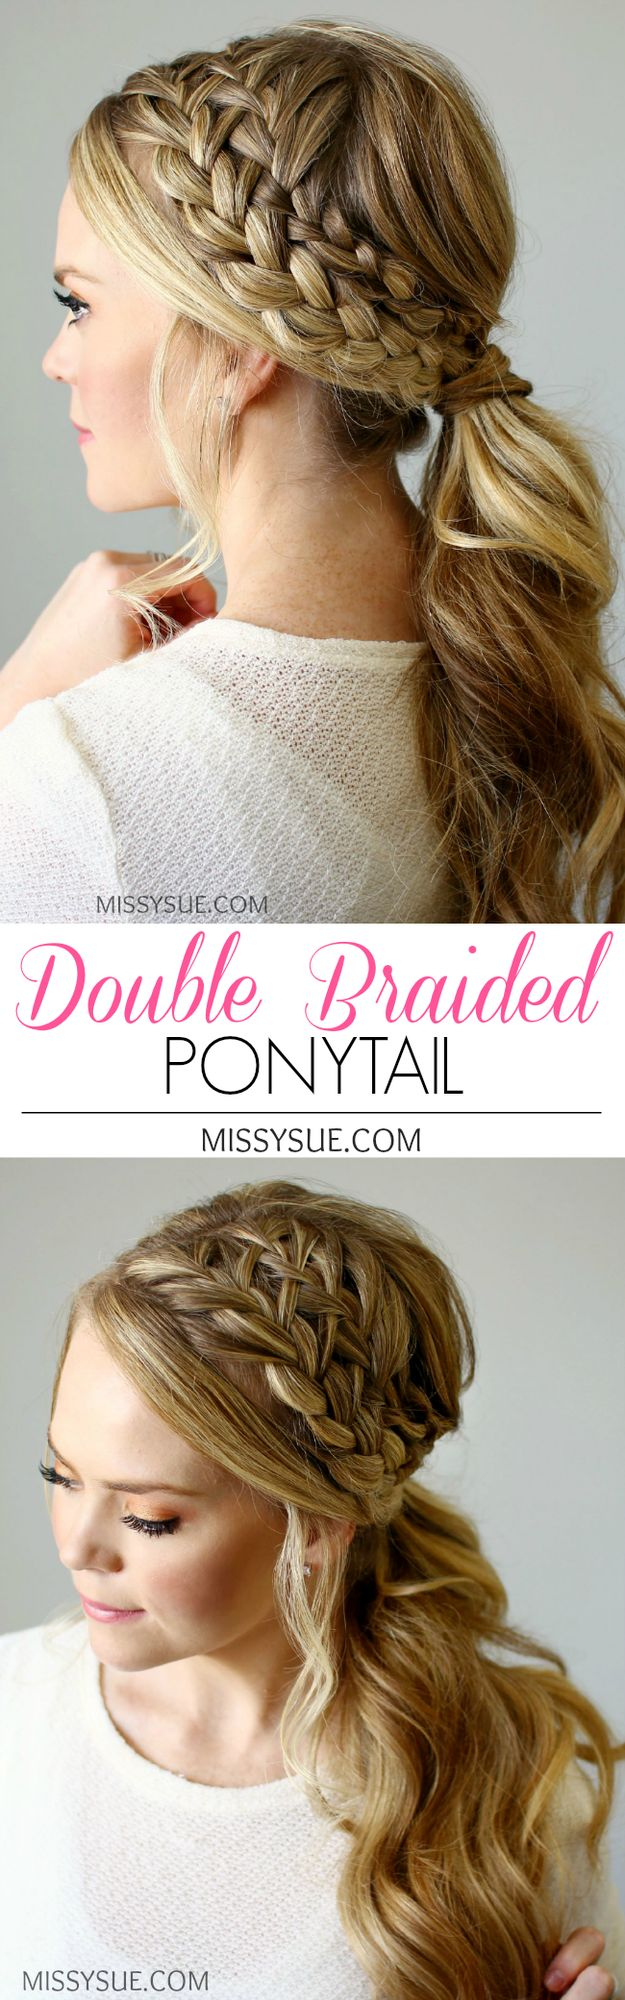 This double braided ponytail looks tricky and intricate but when you break it down it is surprisingly simple. The technique behind this look is one I've featured before in several other tutorials and